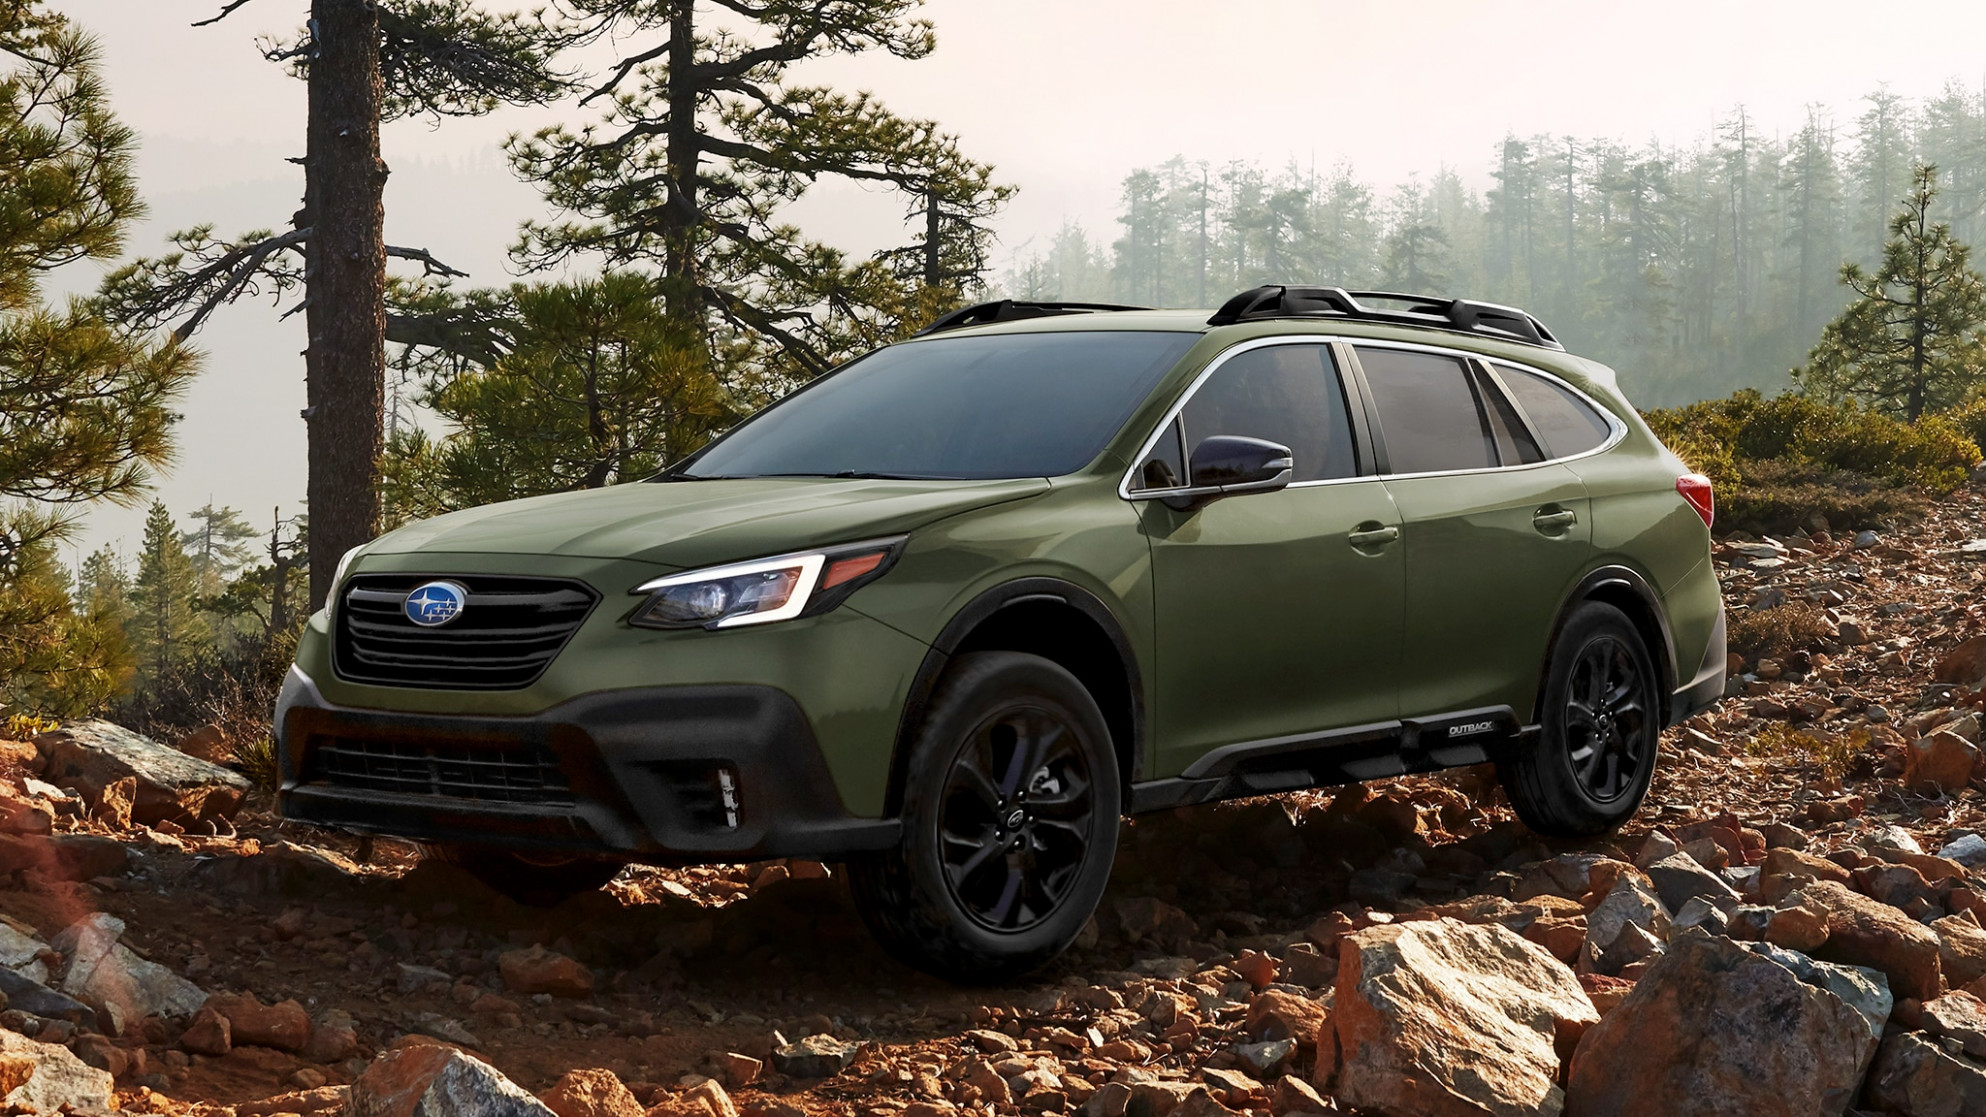 8 Things to Know About the 8 Subaru Outback